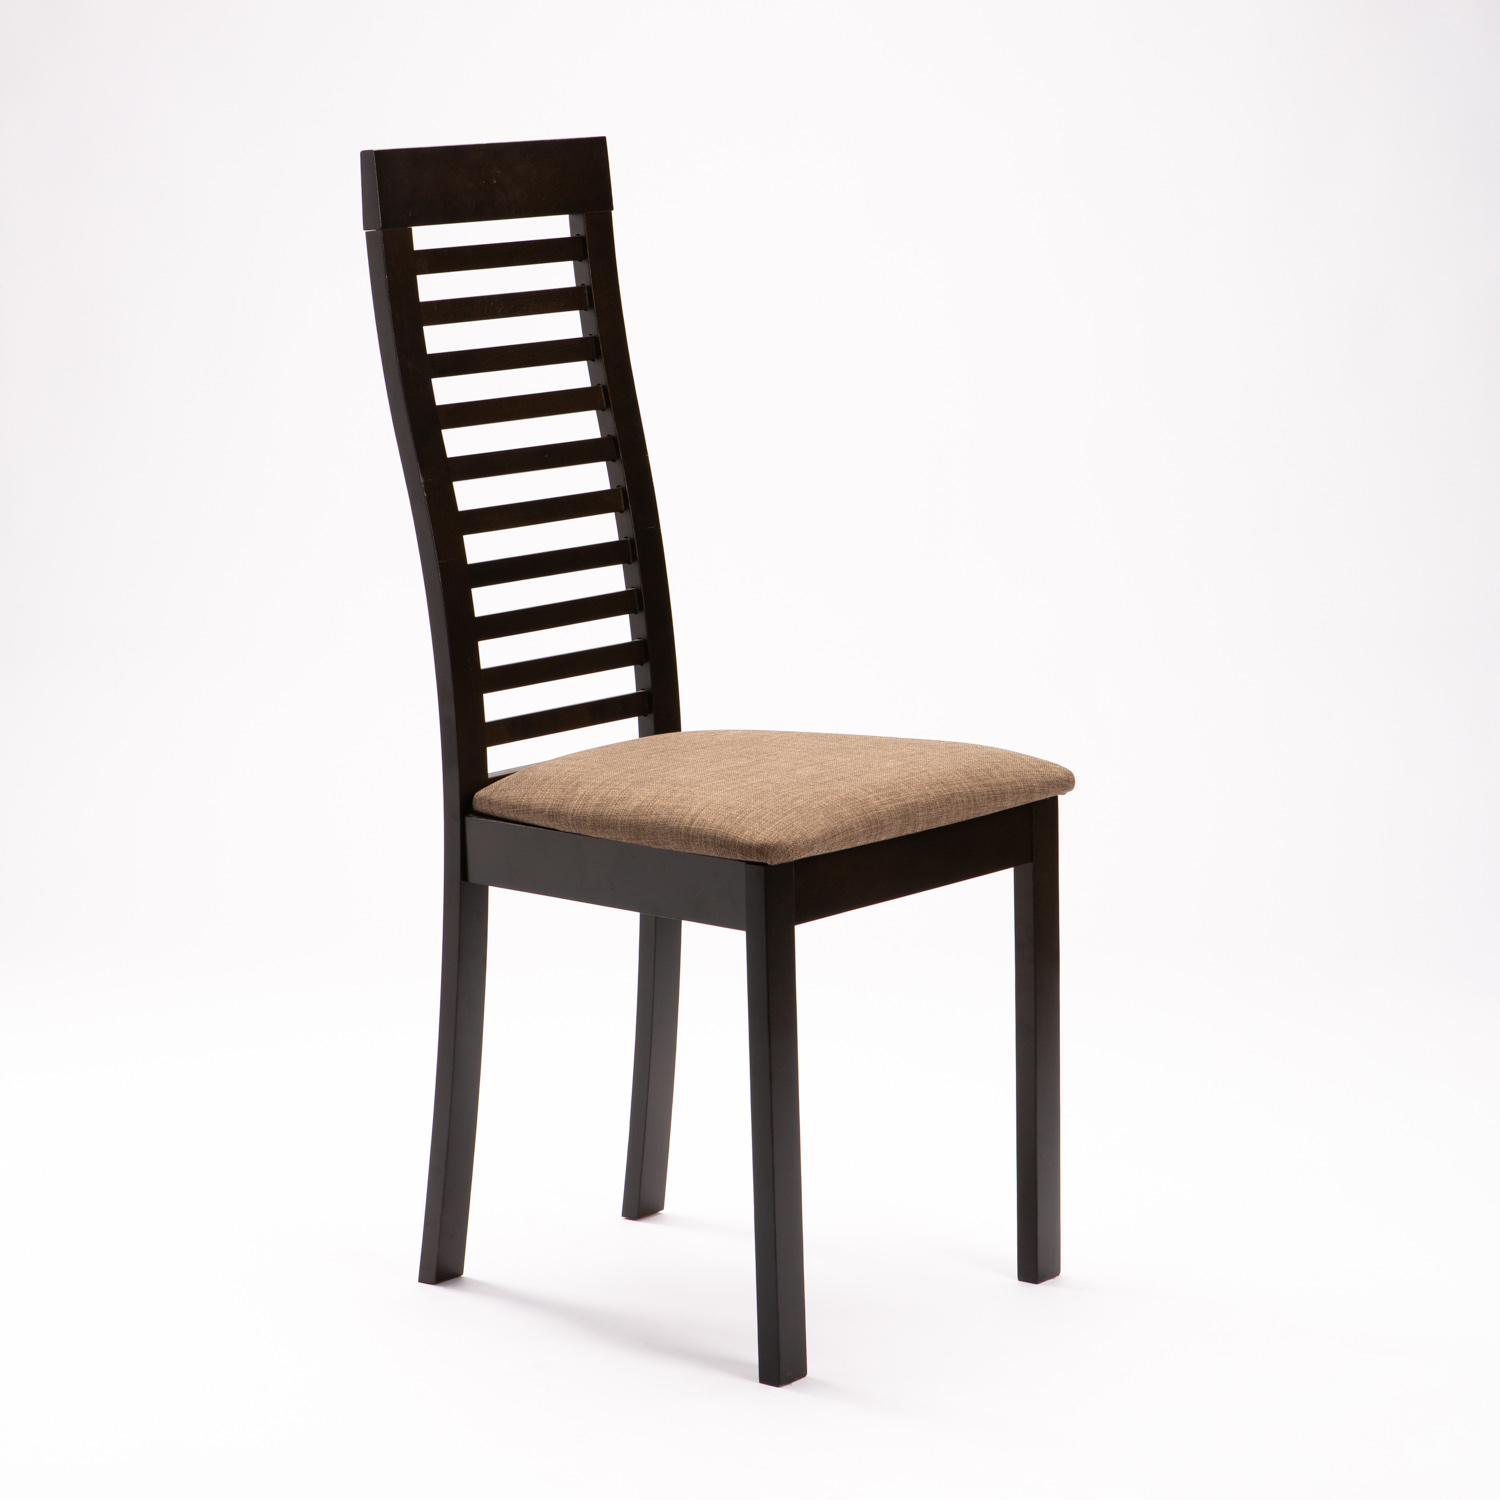 E023 DINING CHAIR